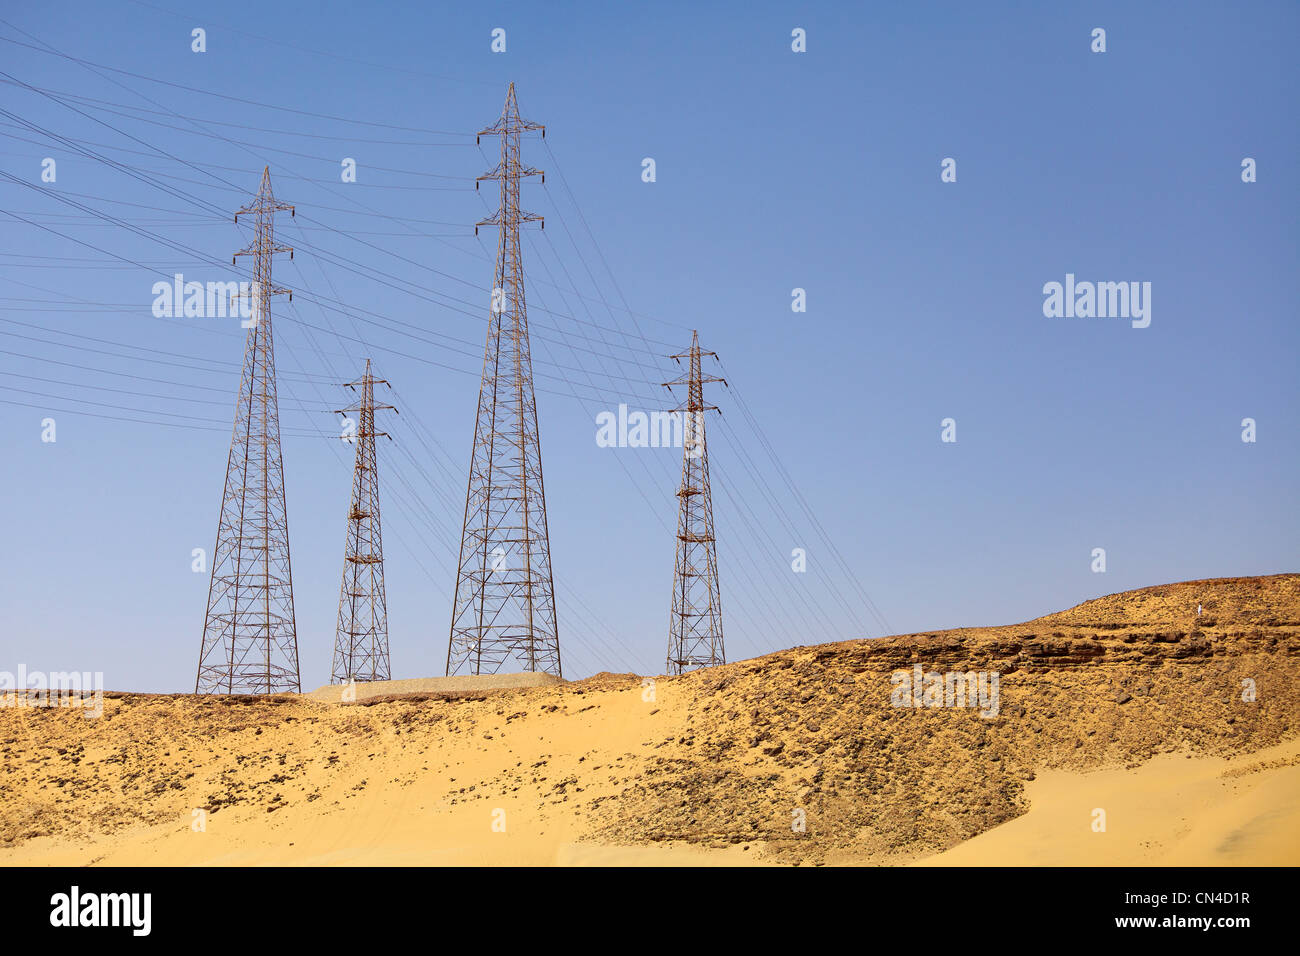 Egypt - high voltage lines near Aswan - Stock Image